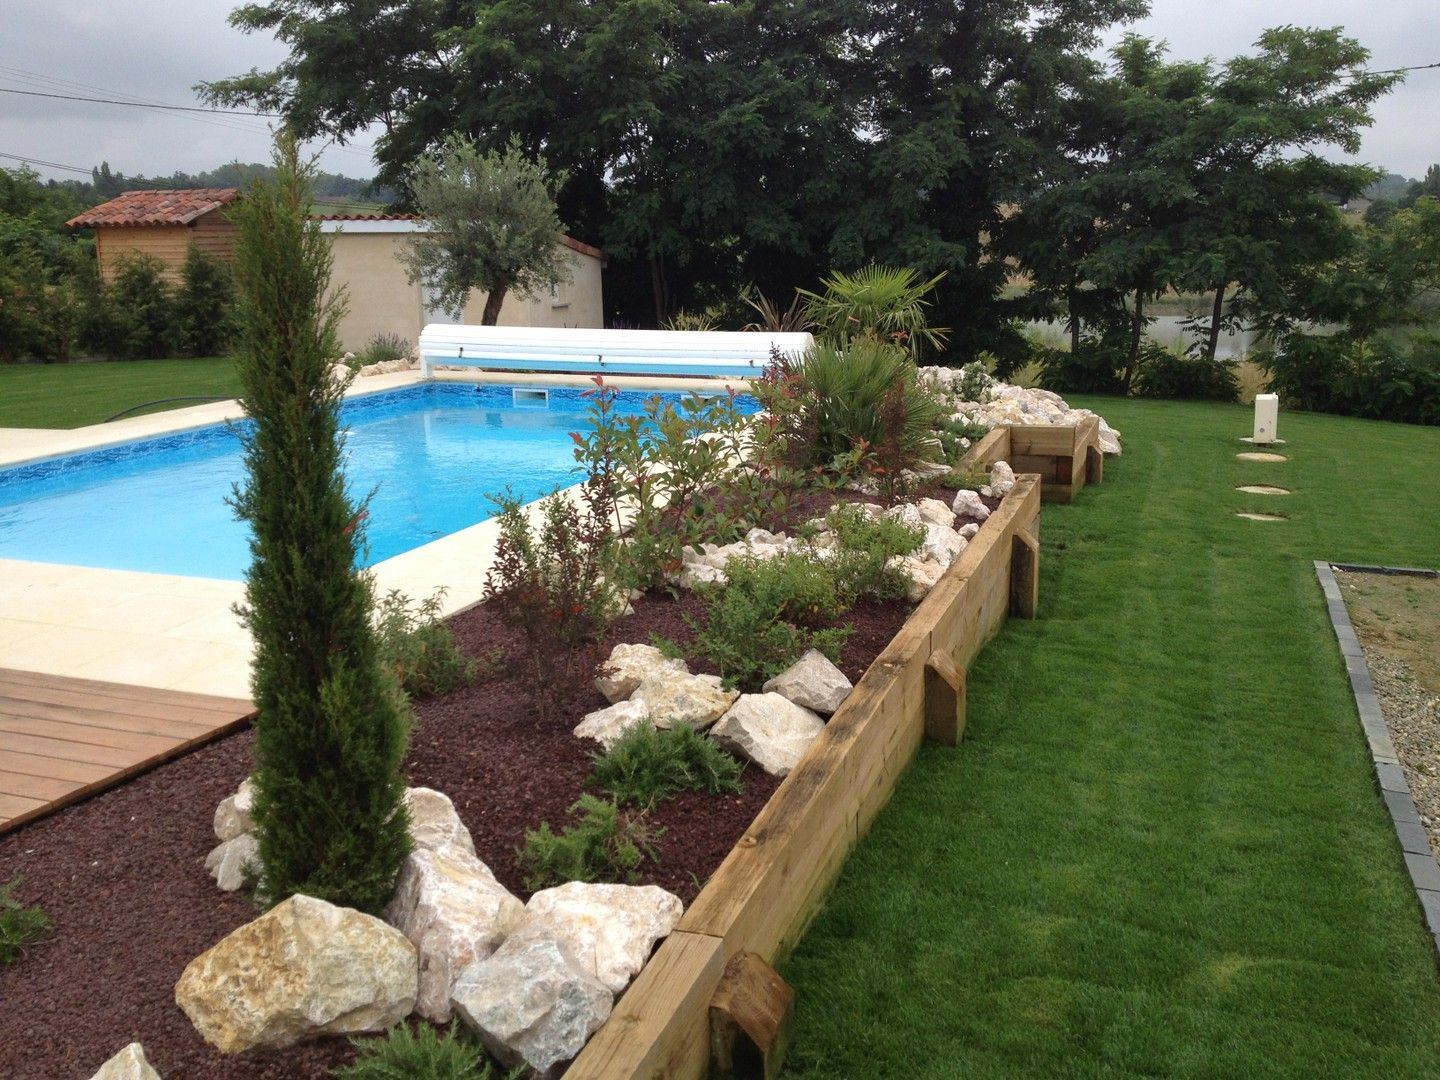 aménagement tour de piscine | Garden pond,pools | Pinterest ...